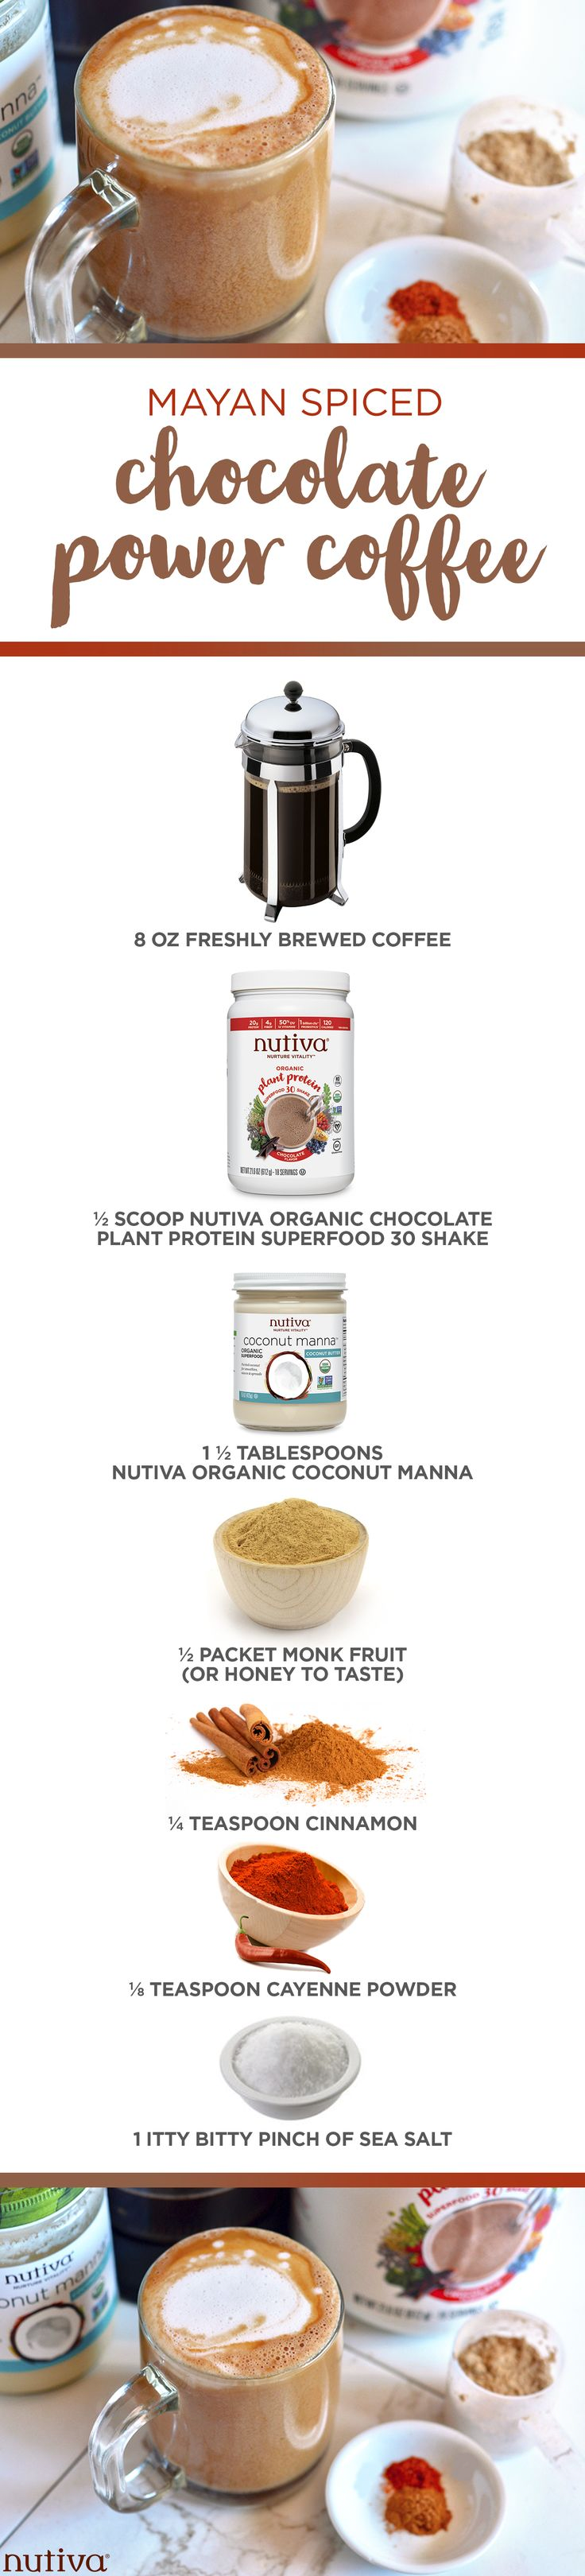 Mayan Spiced Chocolate Power Coffee kitchen.nutiva.com